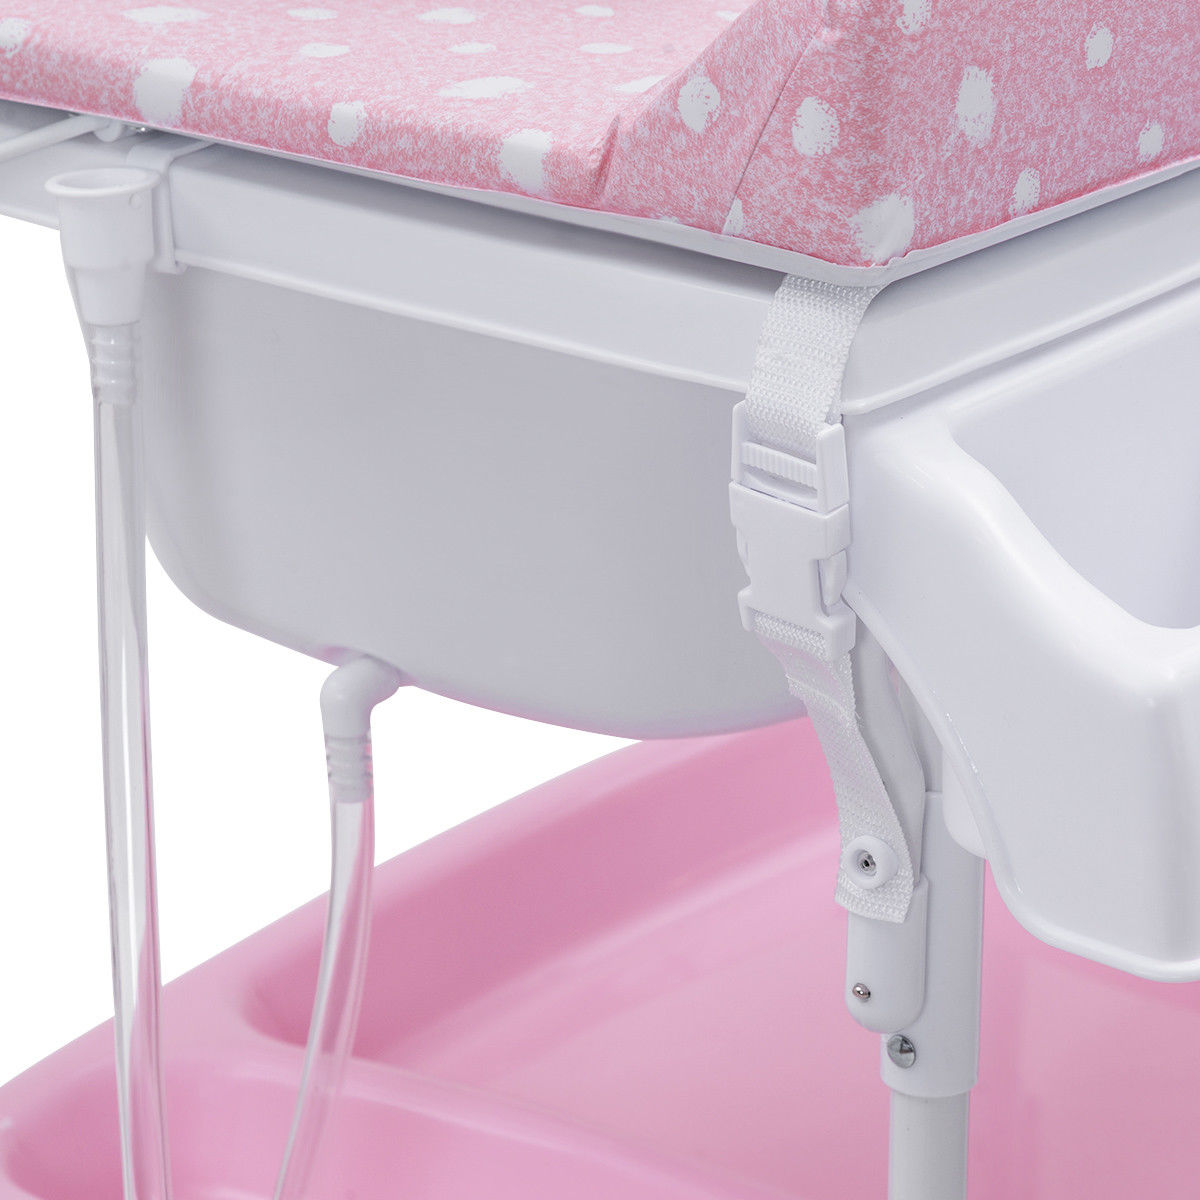 Costway Baby Infant Changing Table Diaper Station Organizer Storage w/ Tube - image 6 de 10